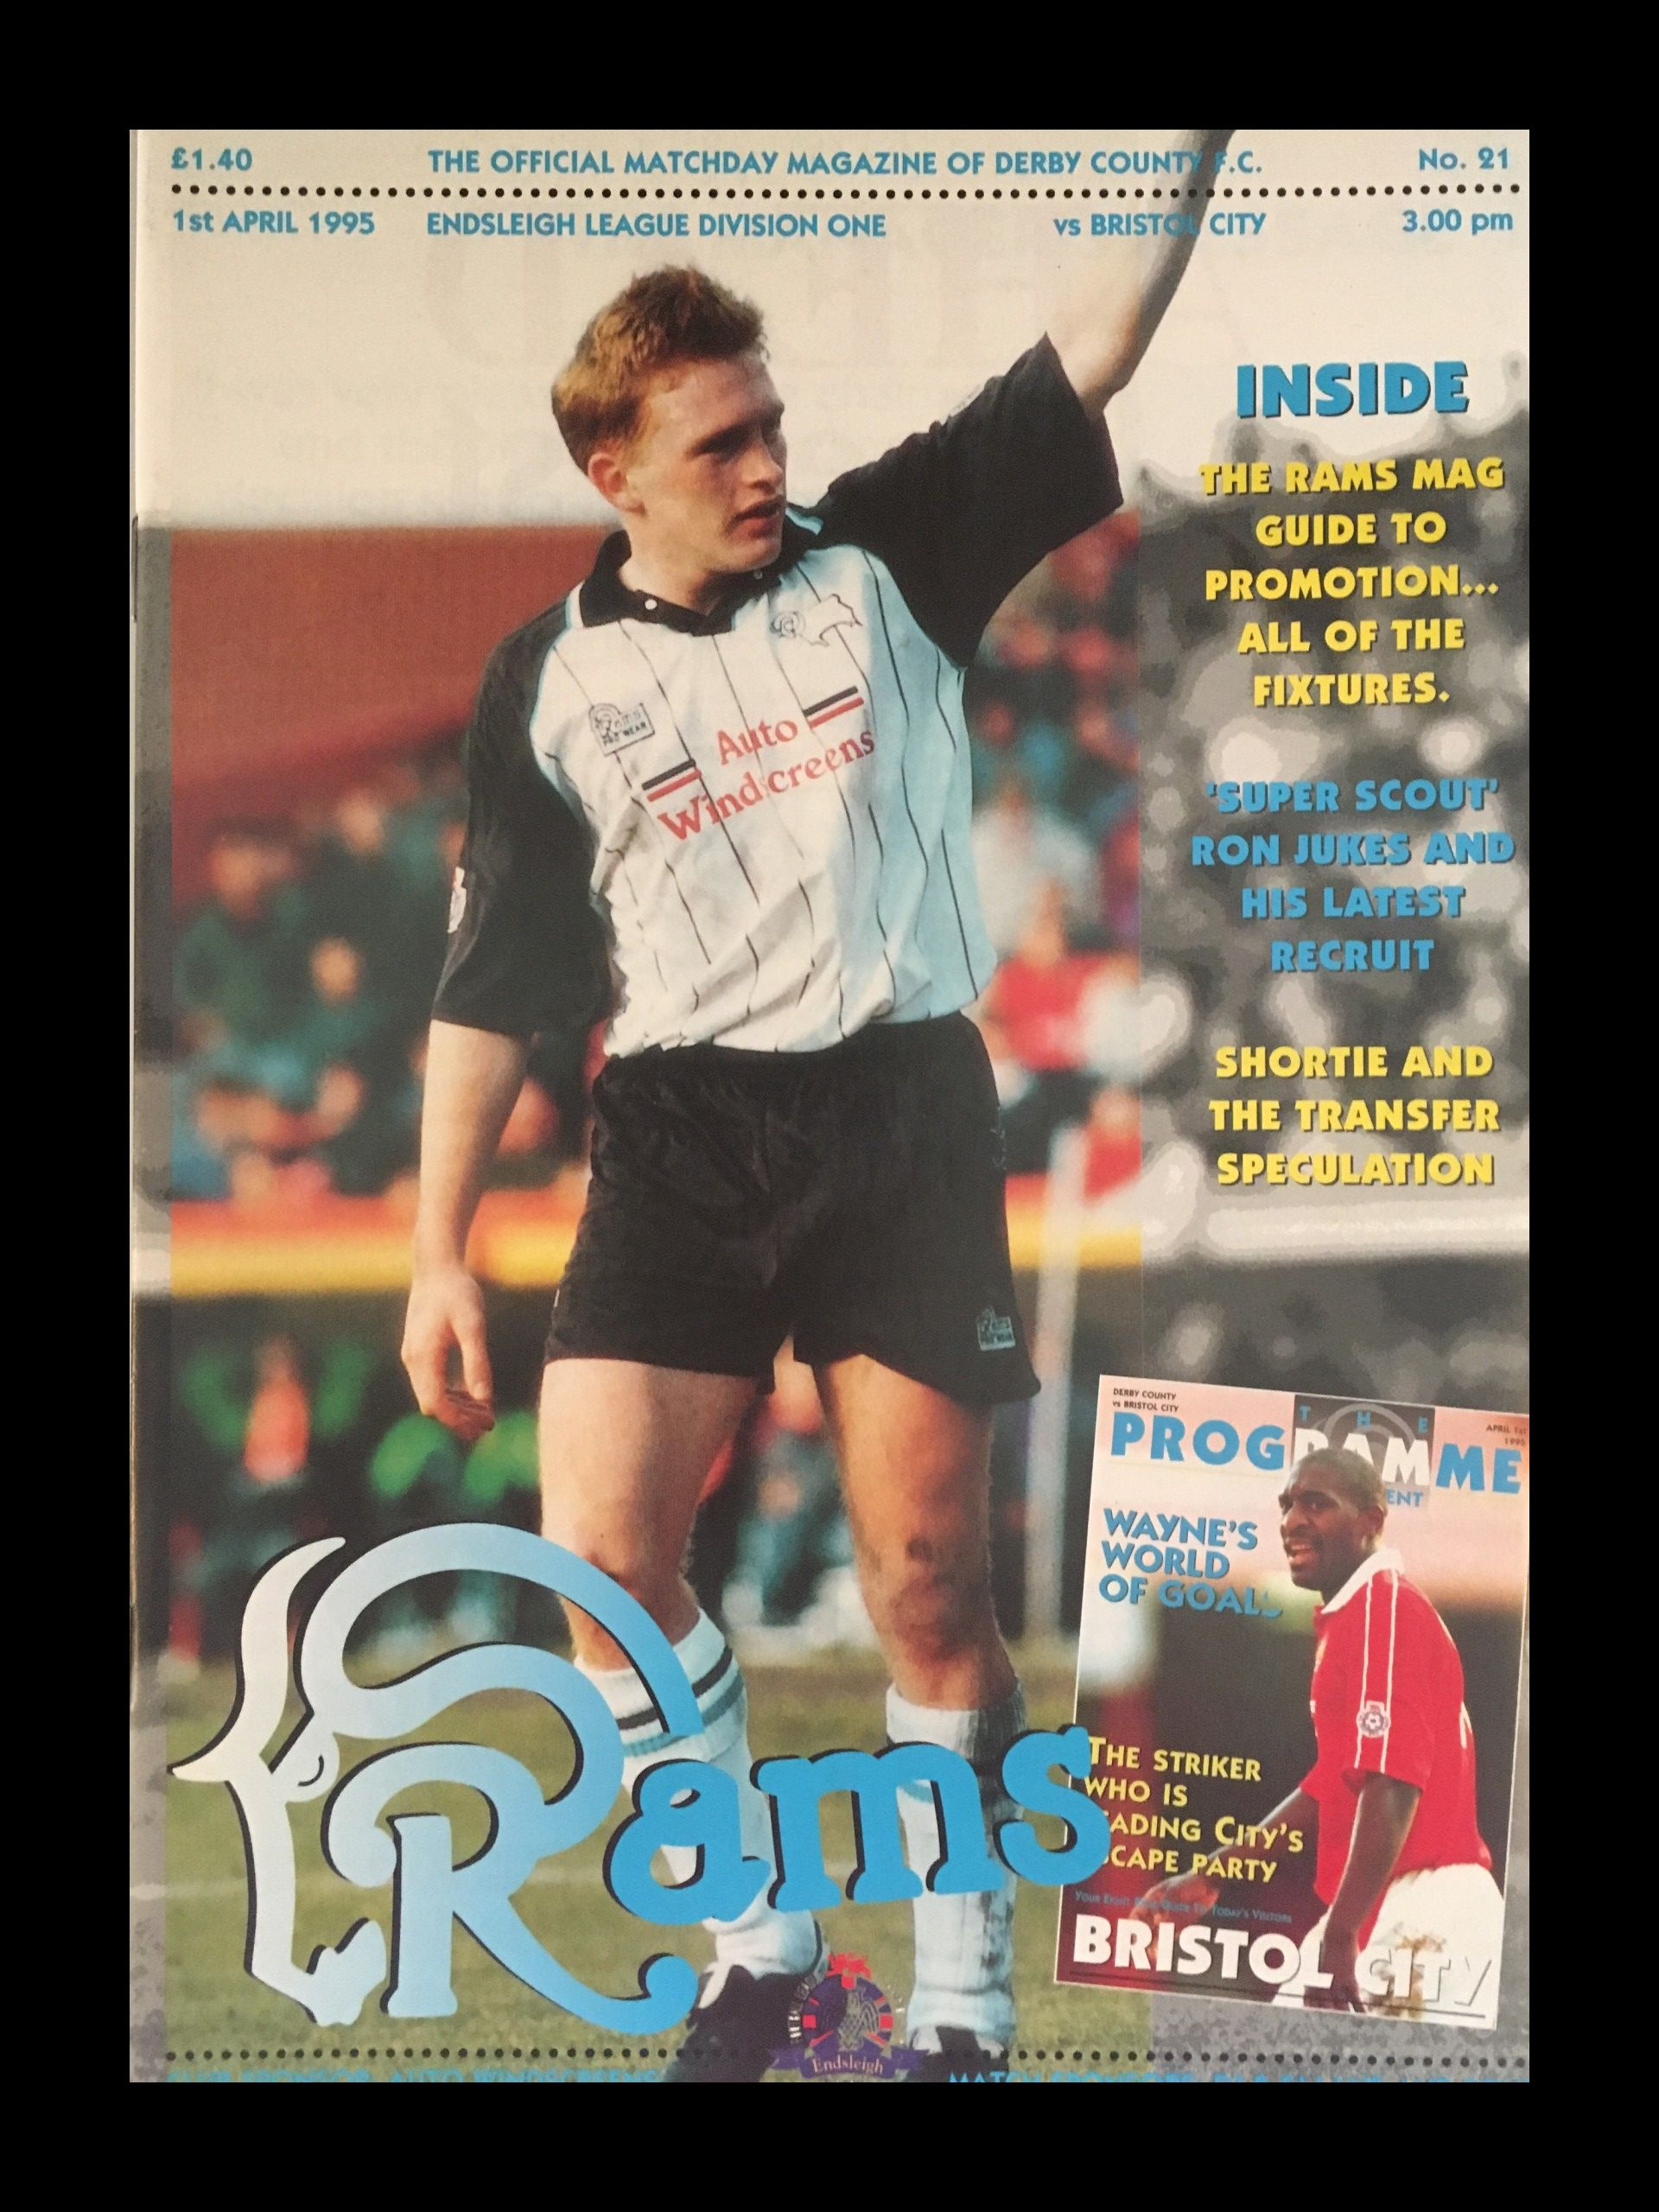 Derby County v Bristol City 01-04-1995 Programme